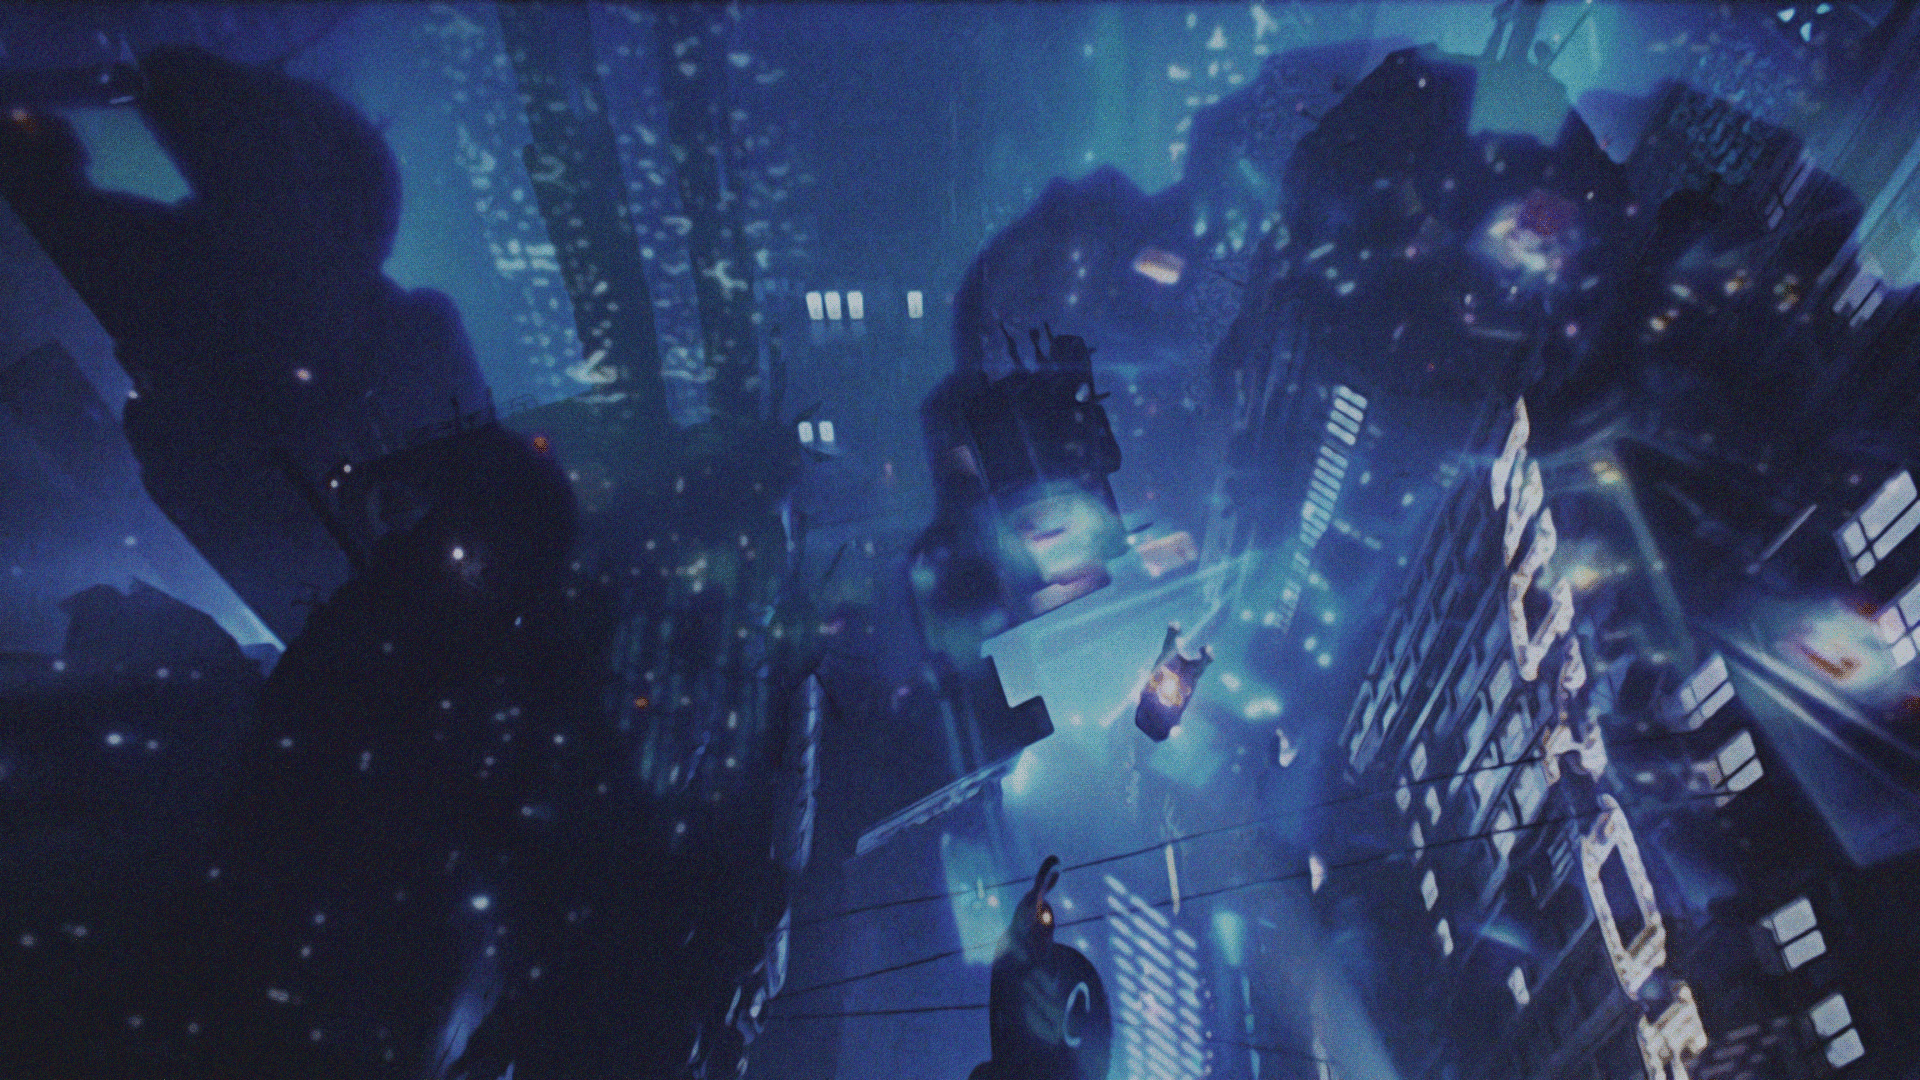 blade runner city wallpaper Alien Fiction 1920x1080